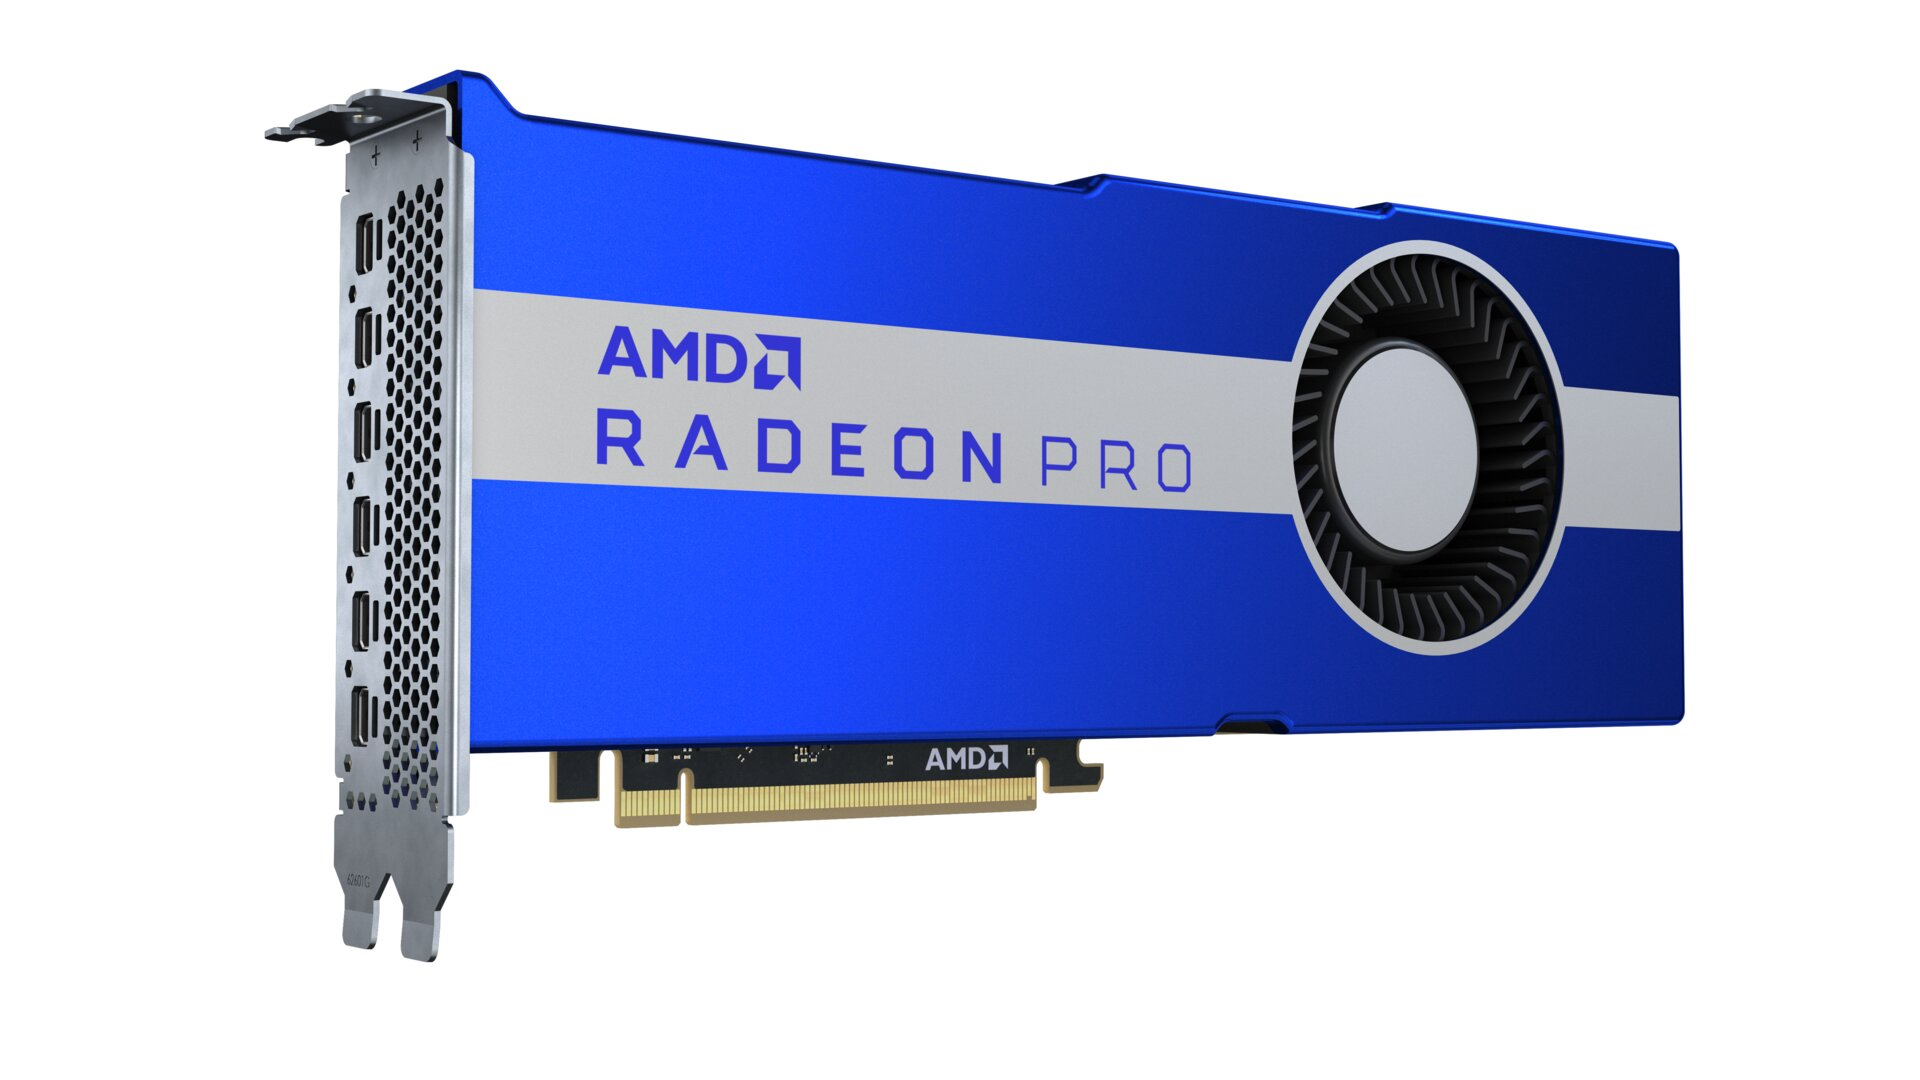 New Radeon Pro Vii Wows On Price And Double Precision Tom S Hardware